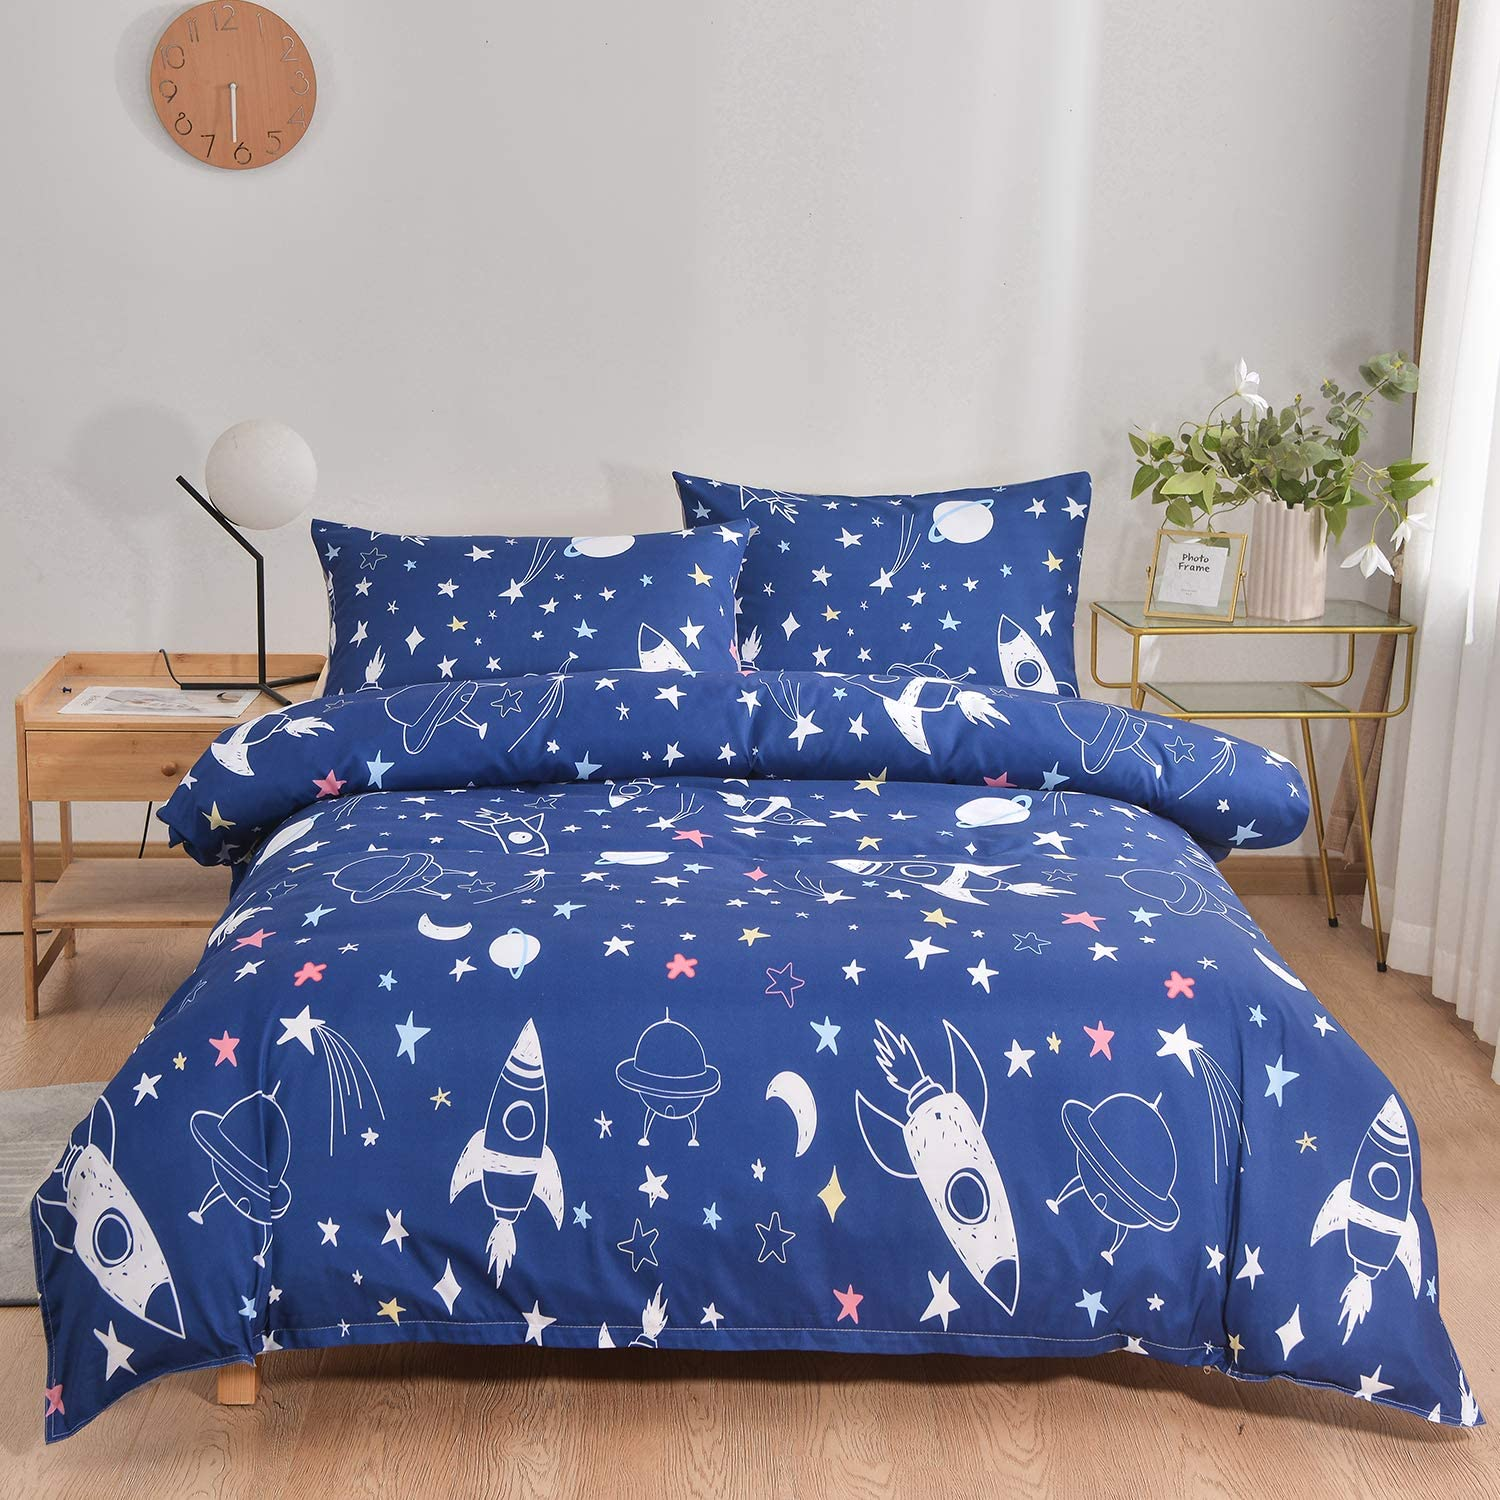 YOOCOOL Cute Bedding Set 3 Pieces Duvet Cover Set with 3D Printings 1 Duvet Cover 2 Pillowcases for Kids and Teens Colorful, Twin